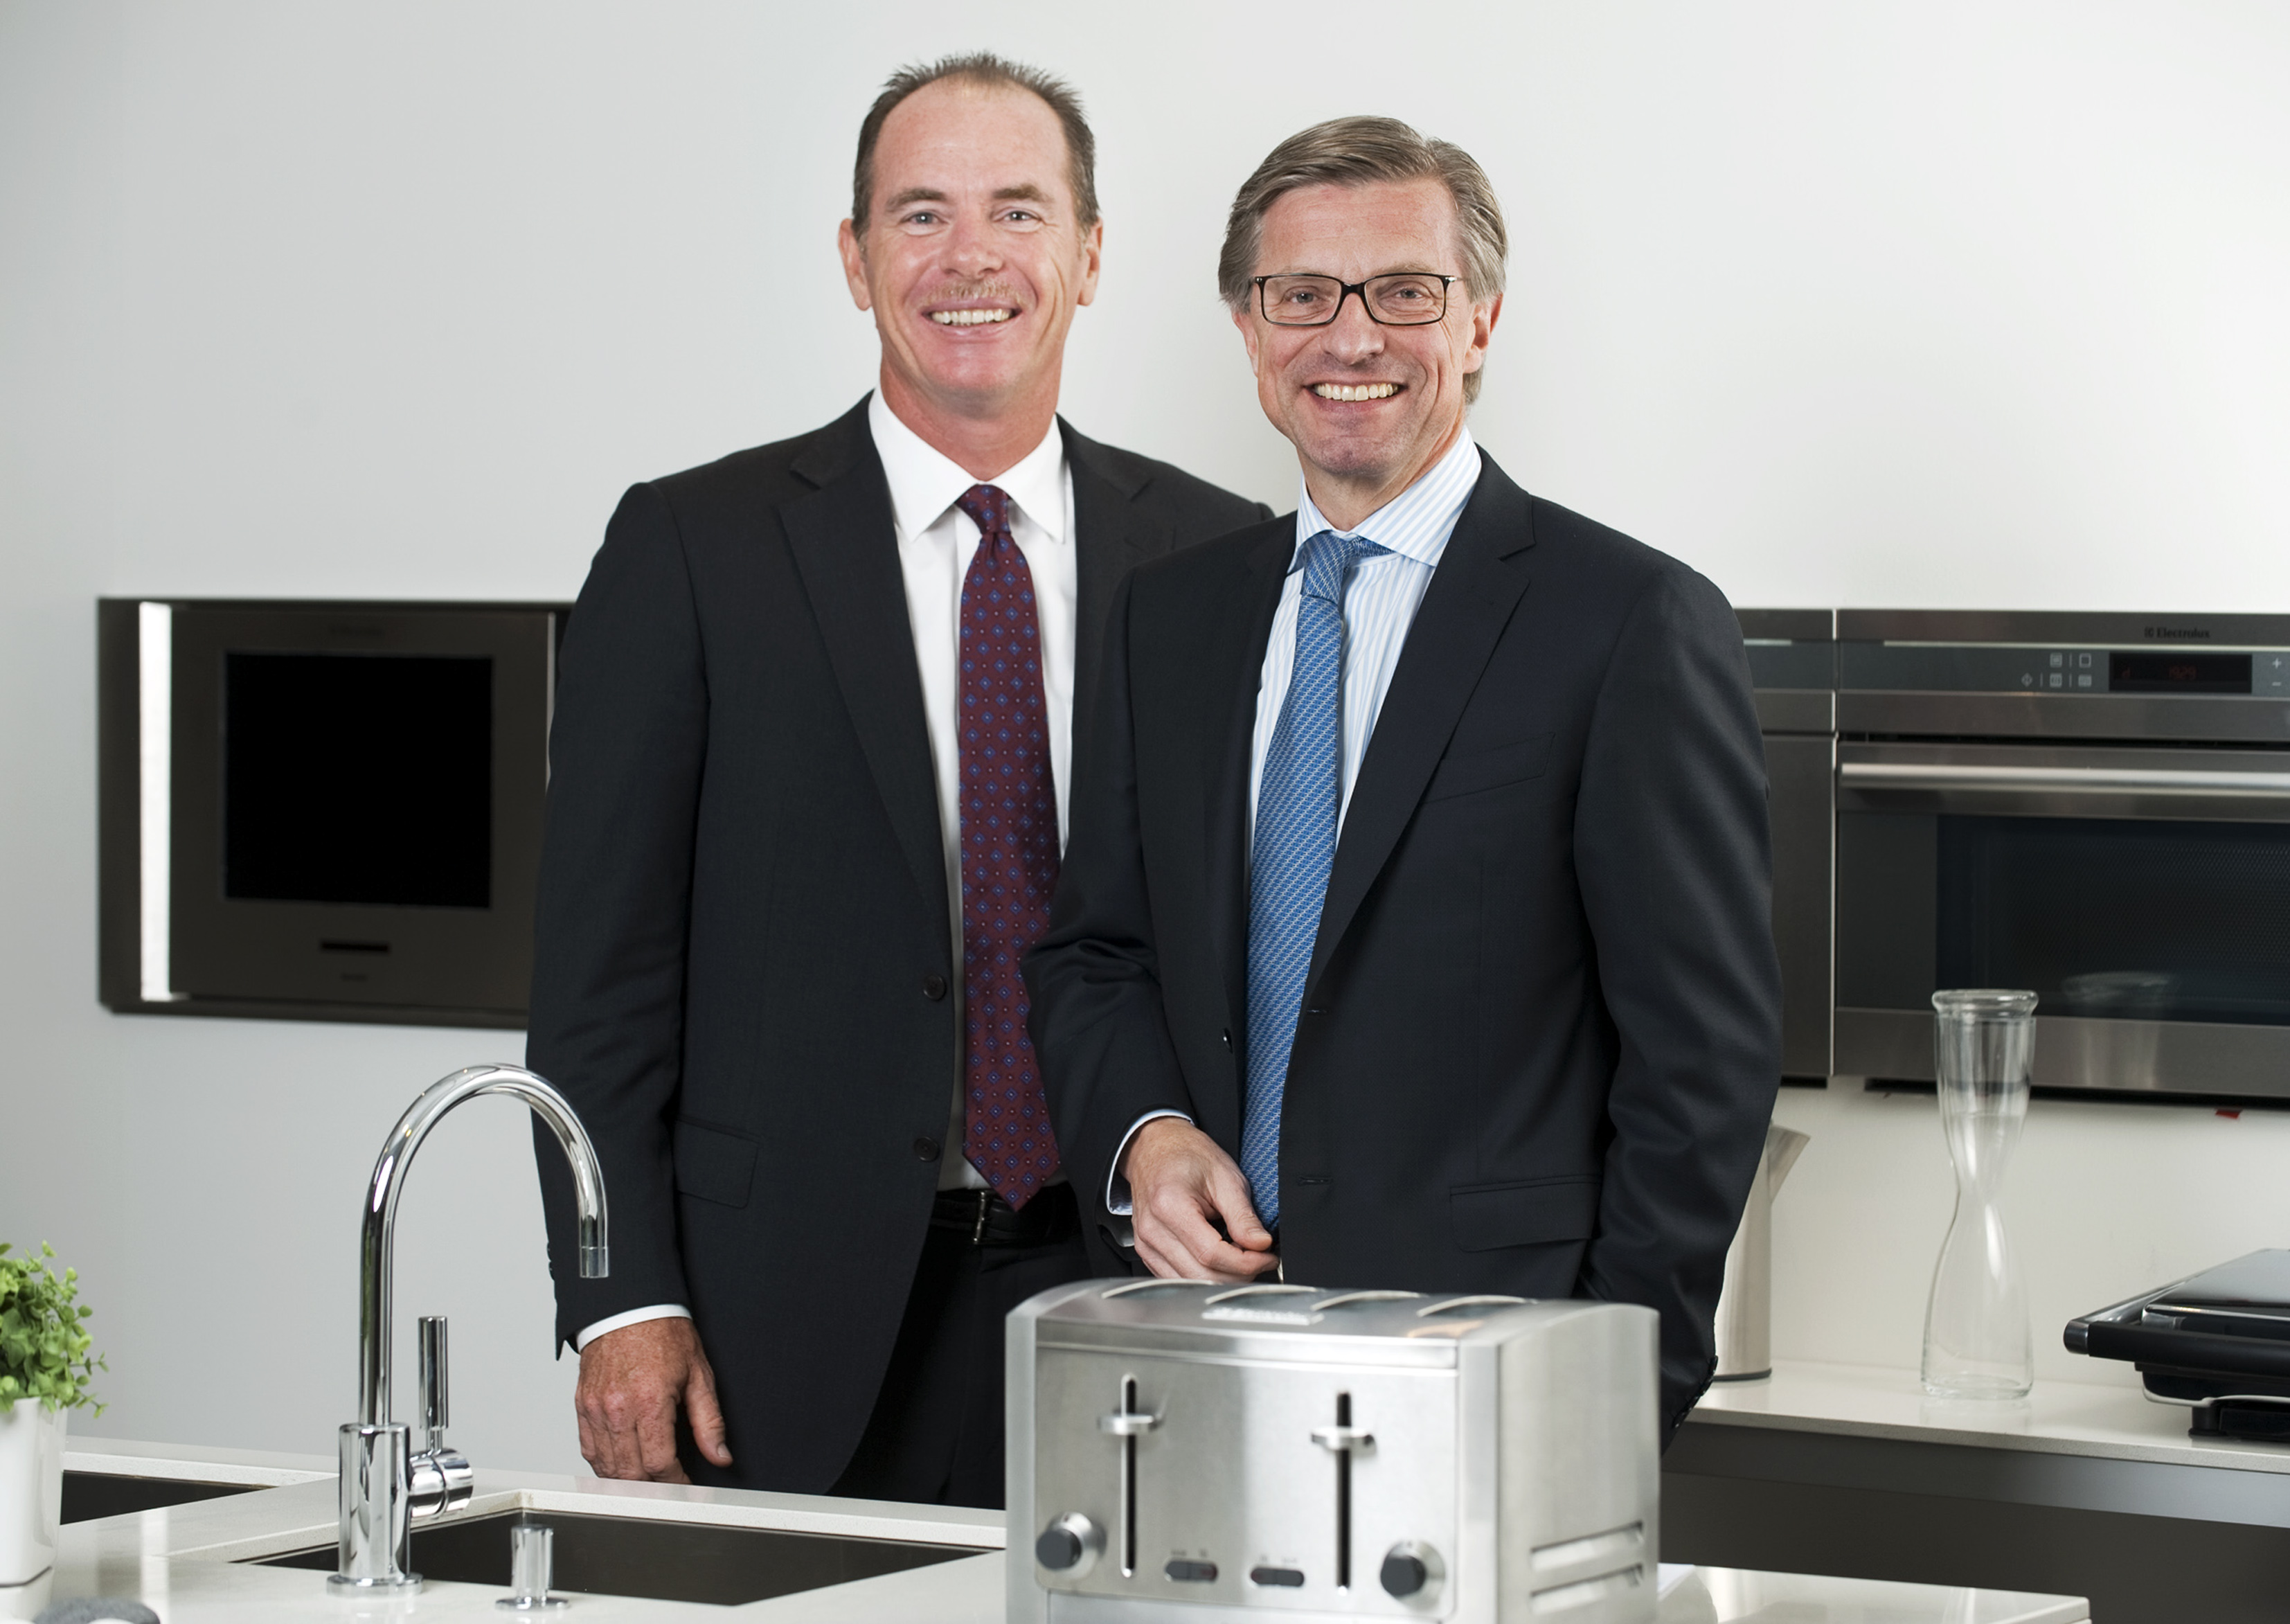 how did electrolux chief executive straberg break down barriers